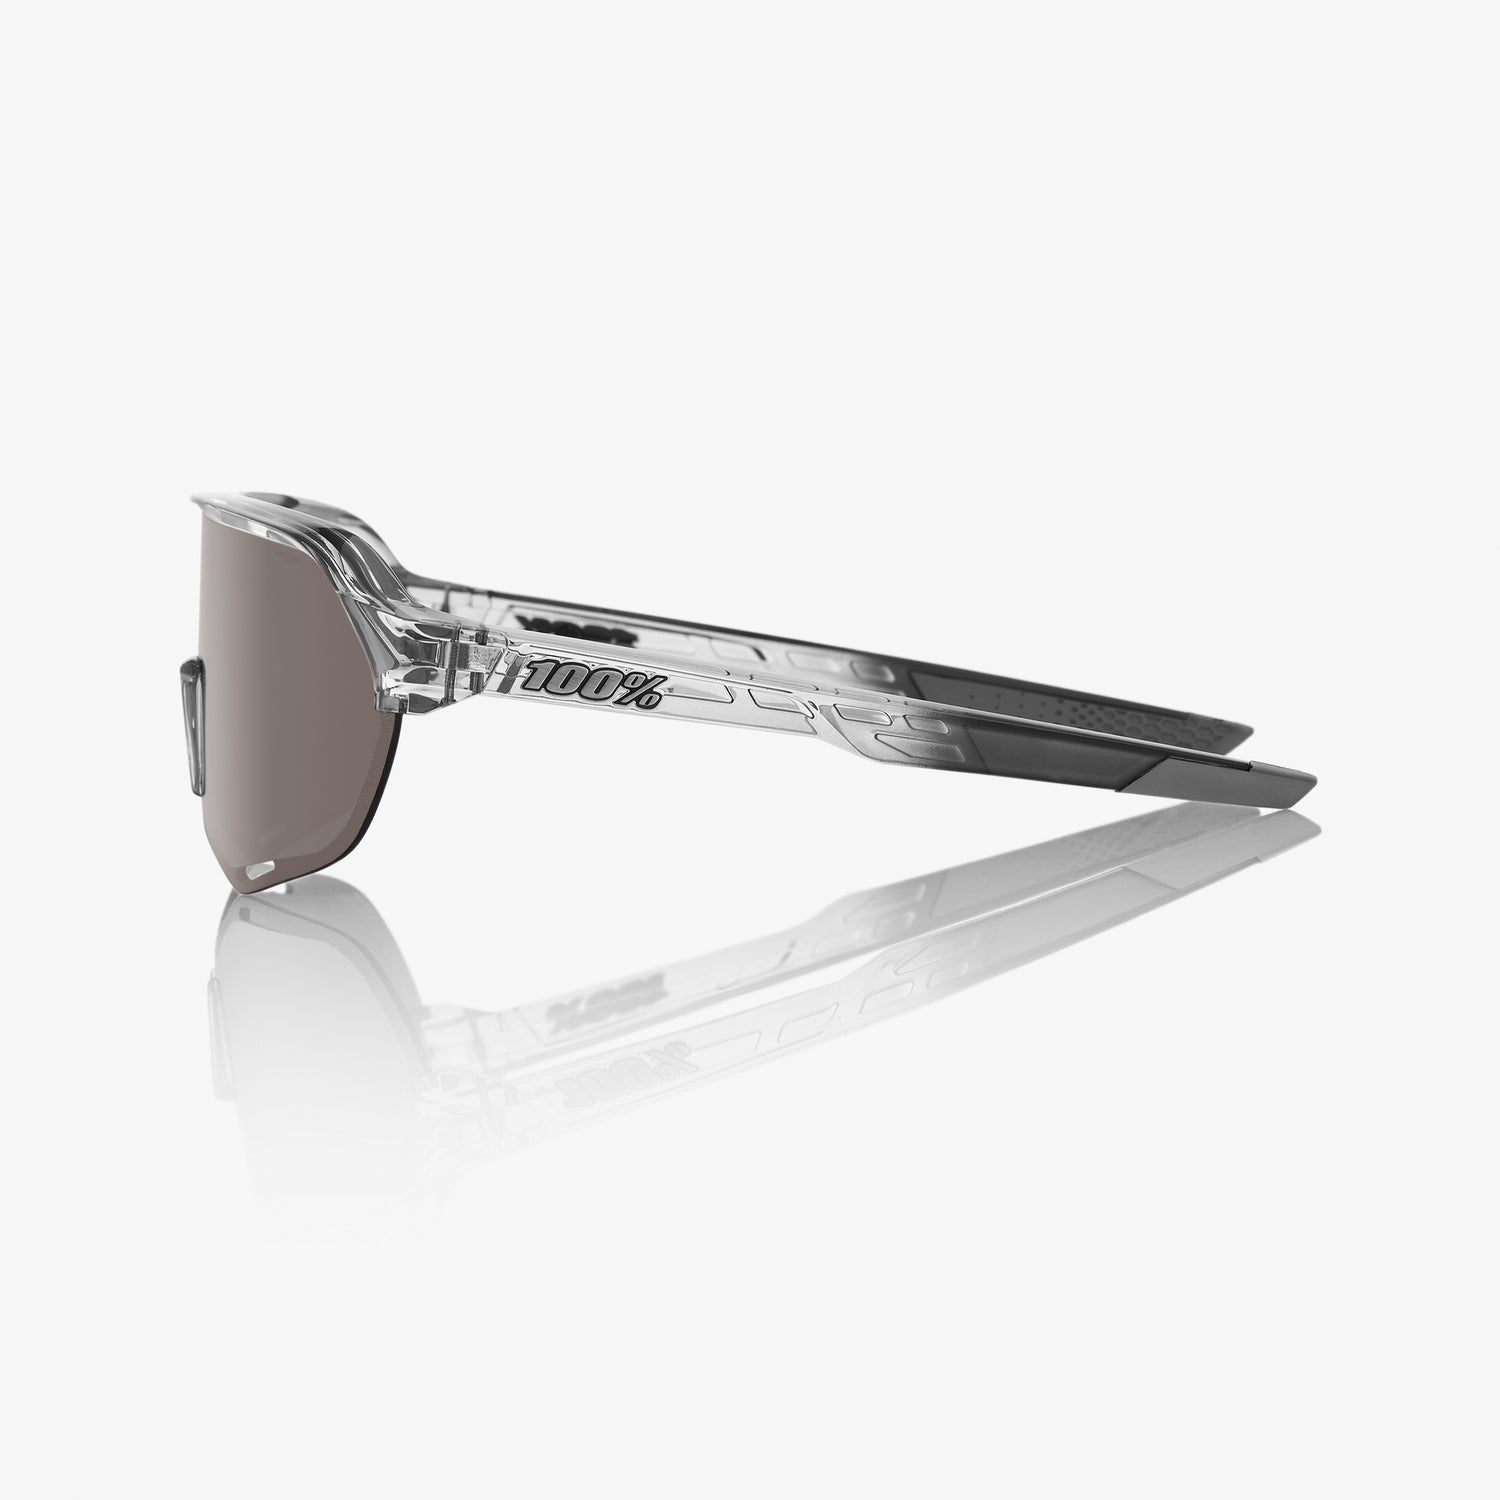 S2 - Polished Translucent Grey - HIPER Silver Mirror Lens